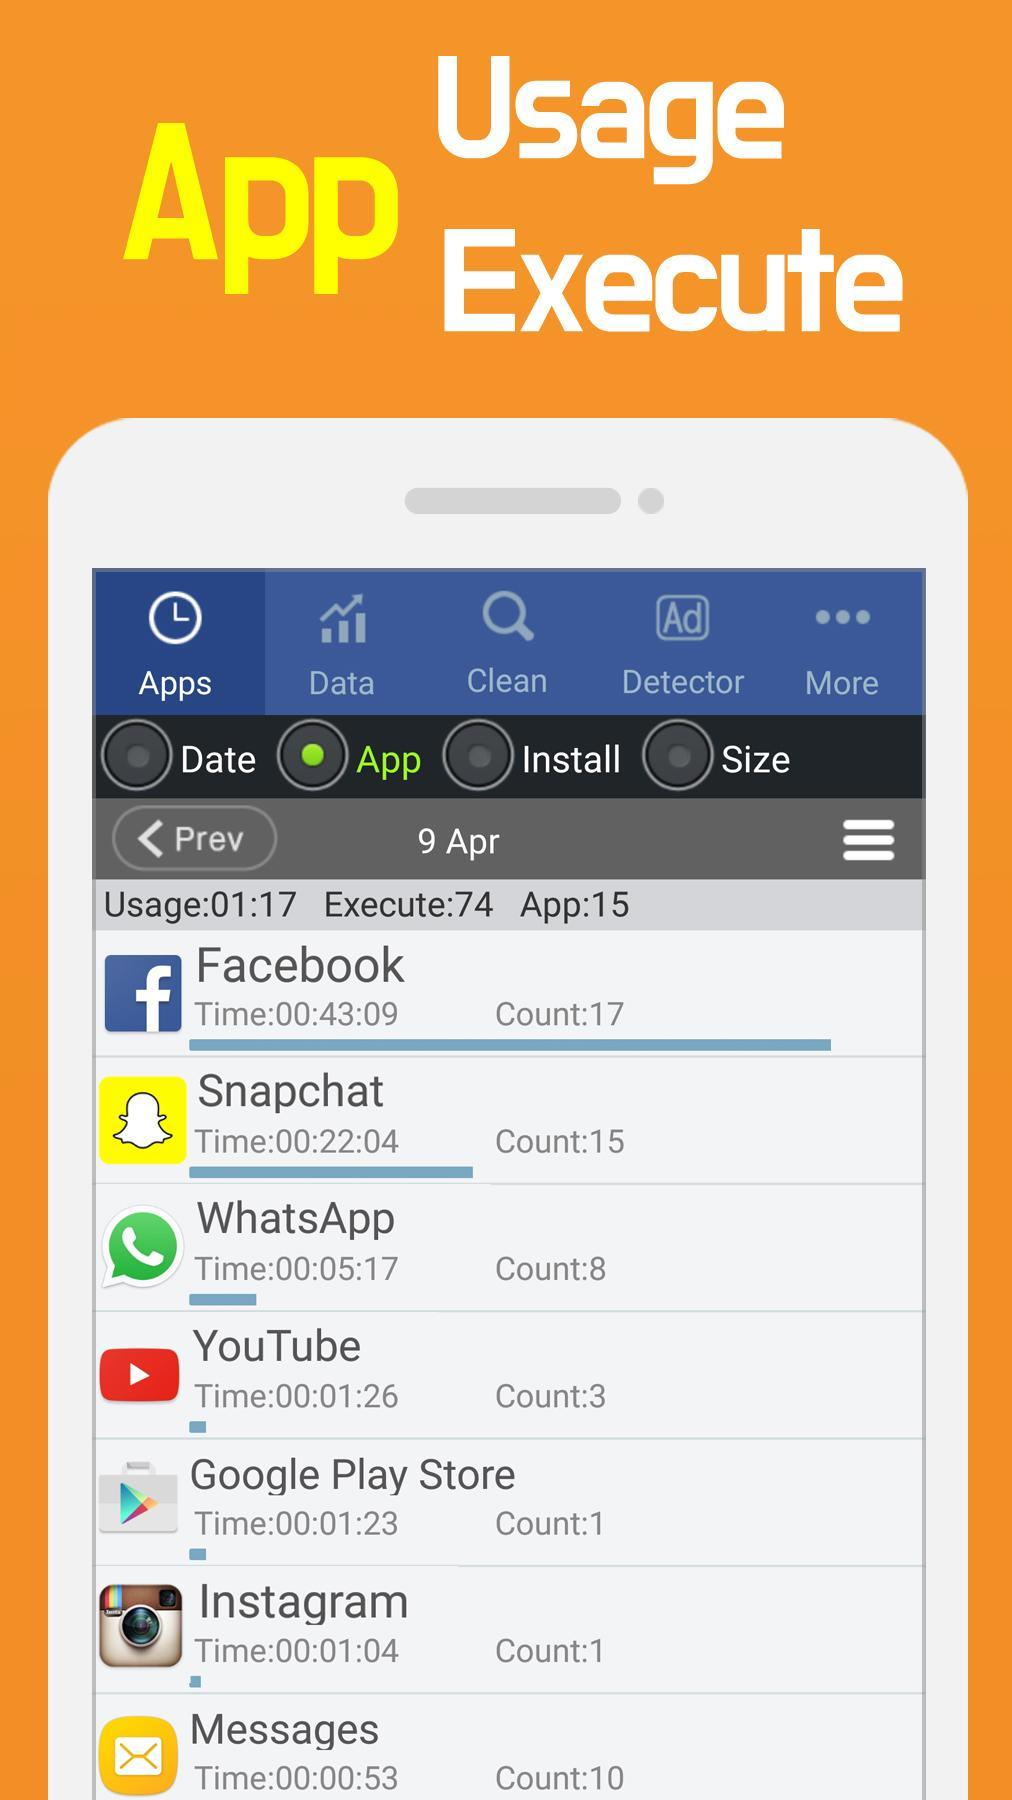 Goclean-Pop up Ad detector,airpush detector for Android